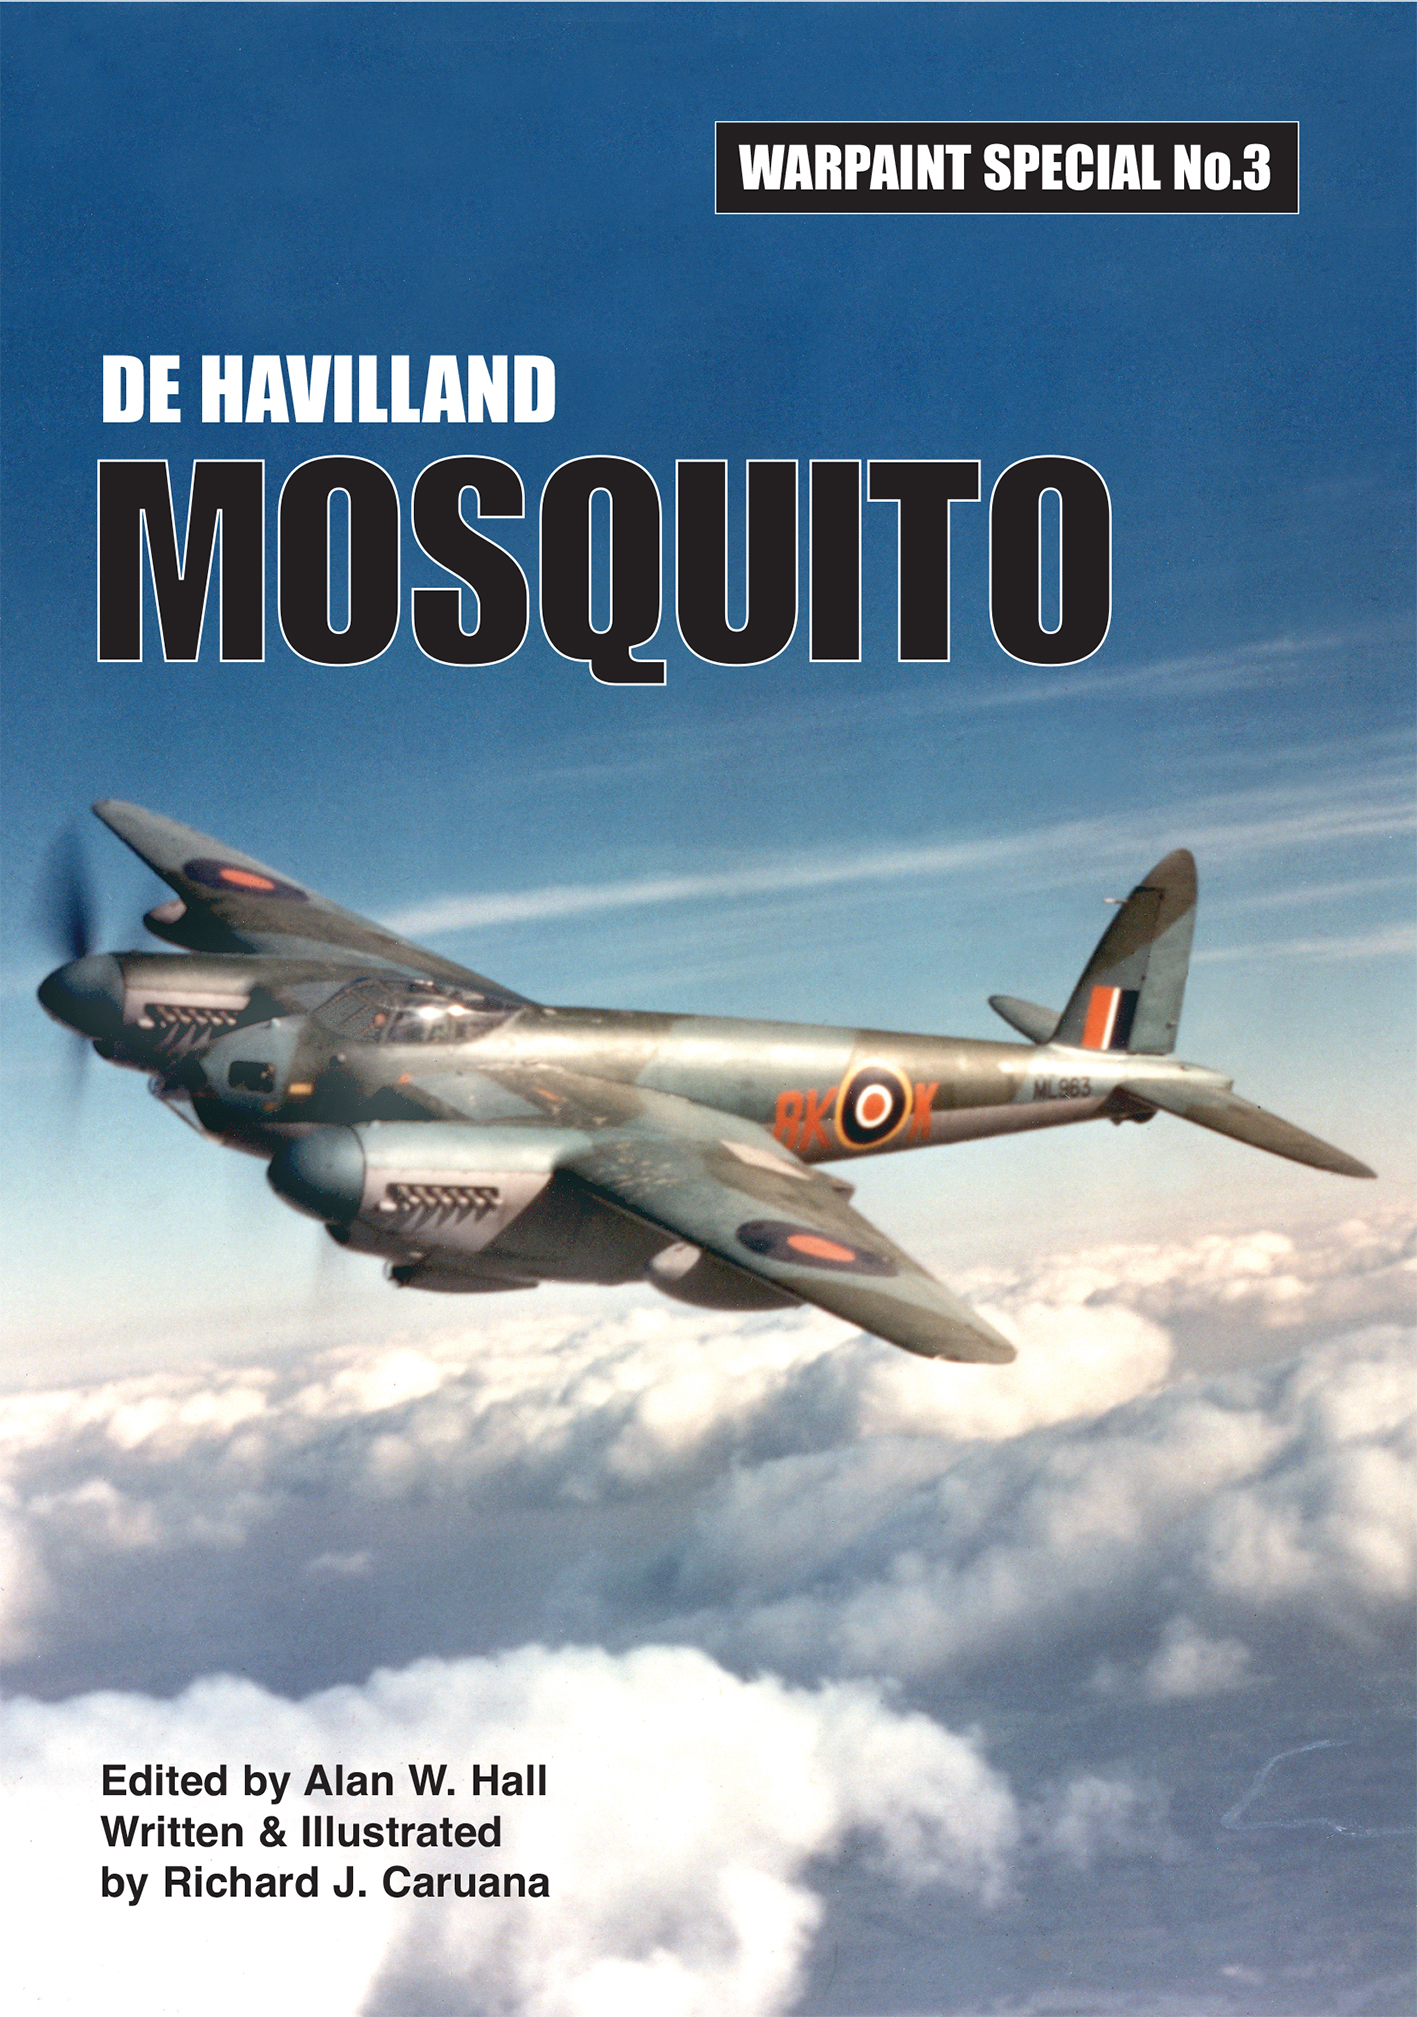 Guideline Publications De Havilland MOSQUITO Warpaint Special no 3